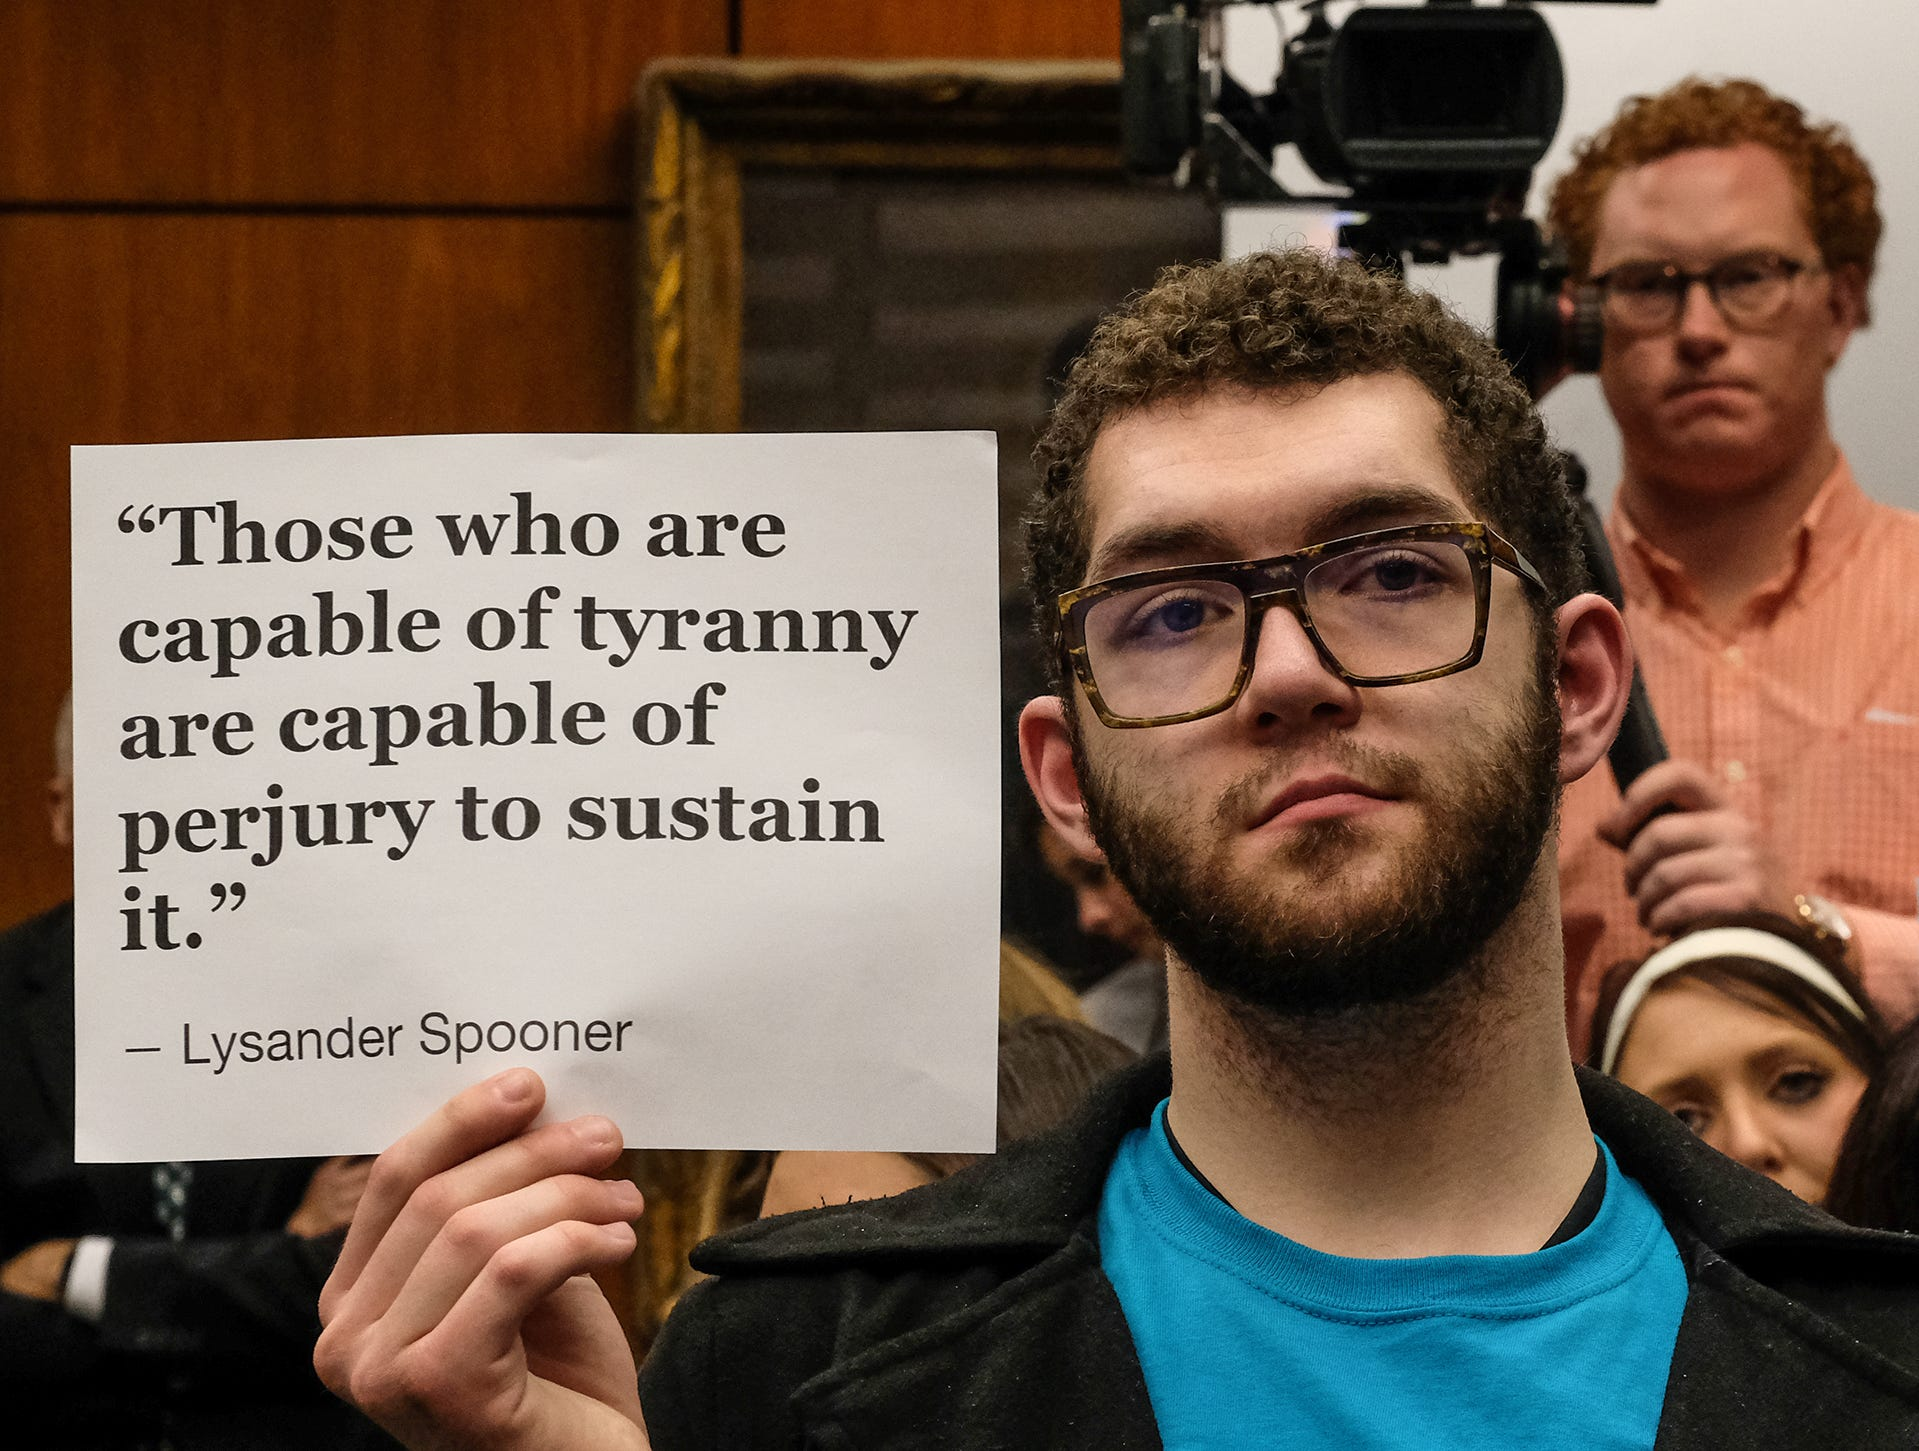 MSU student Colin Wiebrecht along with others in the audience hold up quotes they feel is pertinent to the proceedings at the MSU Board of Trustees meeting Friday, Dec. 14, 2018. Attendees were critical of the Board for cancelling the Healing Assistance Fund set up for victims of Larry Nassar.